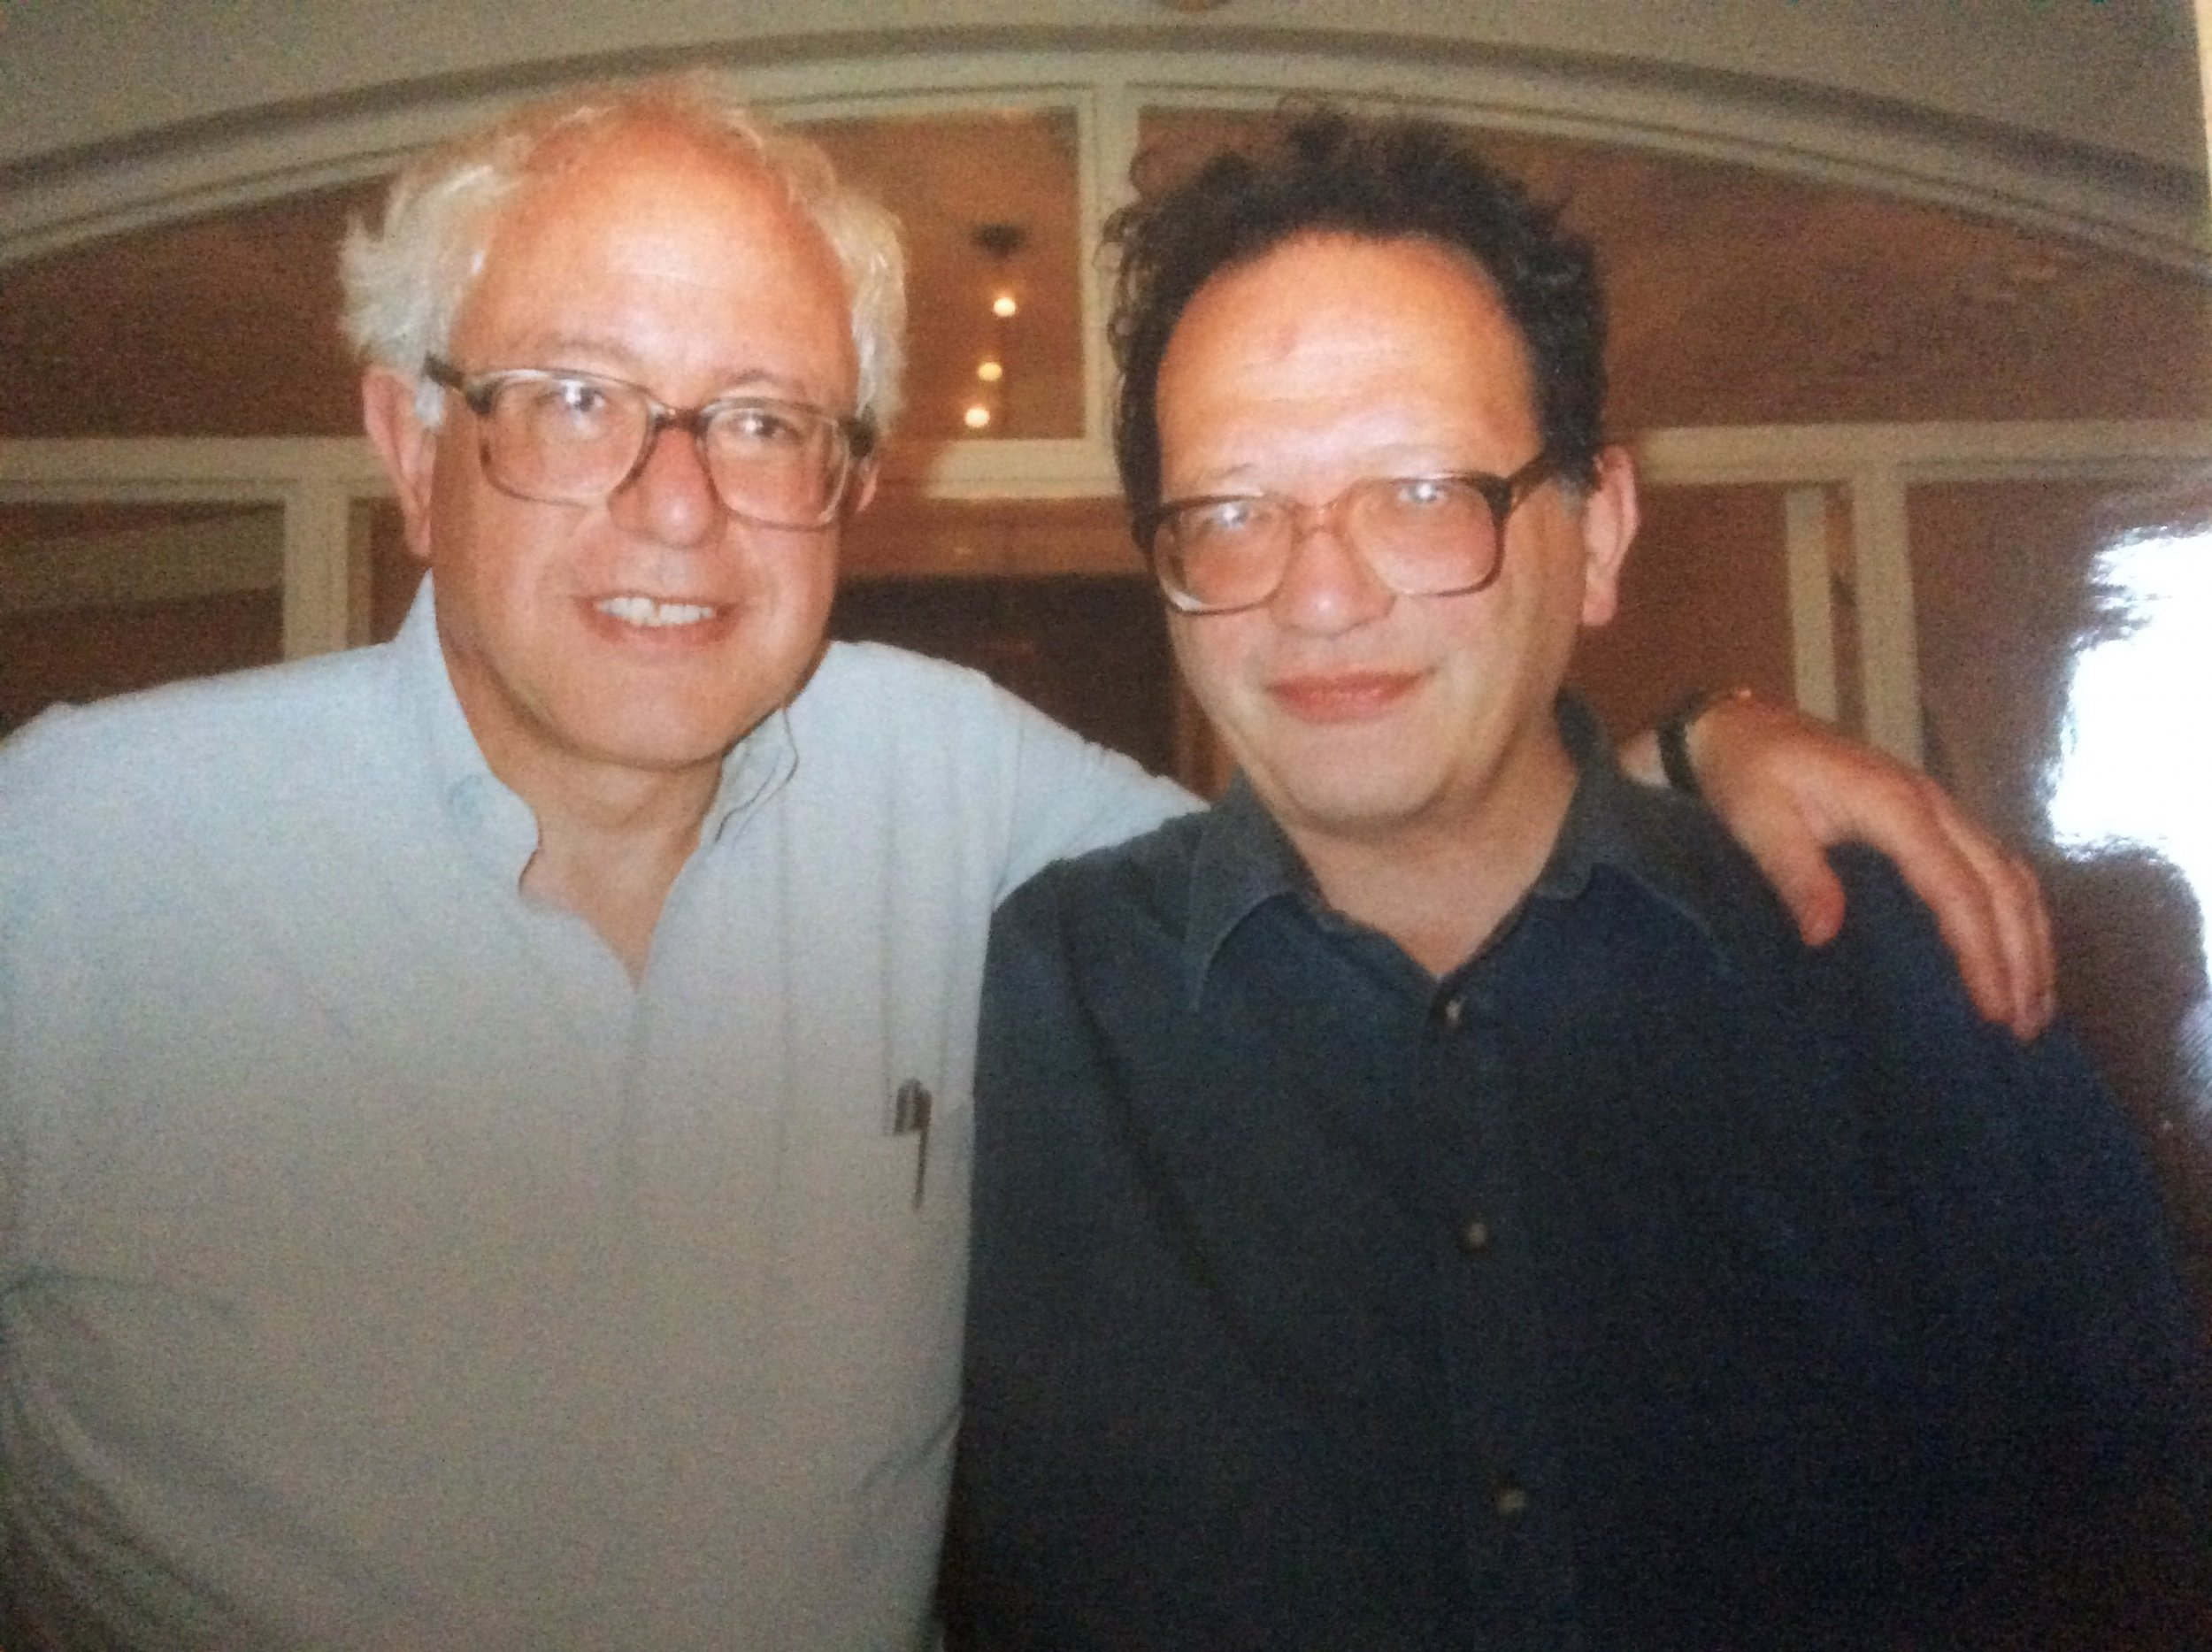 Larry Sanders (R) and Bernie Sanders (L)